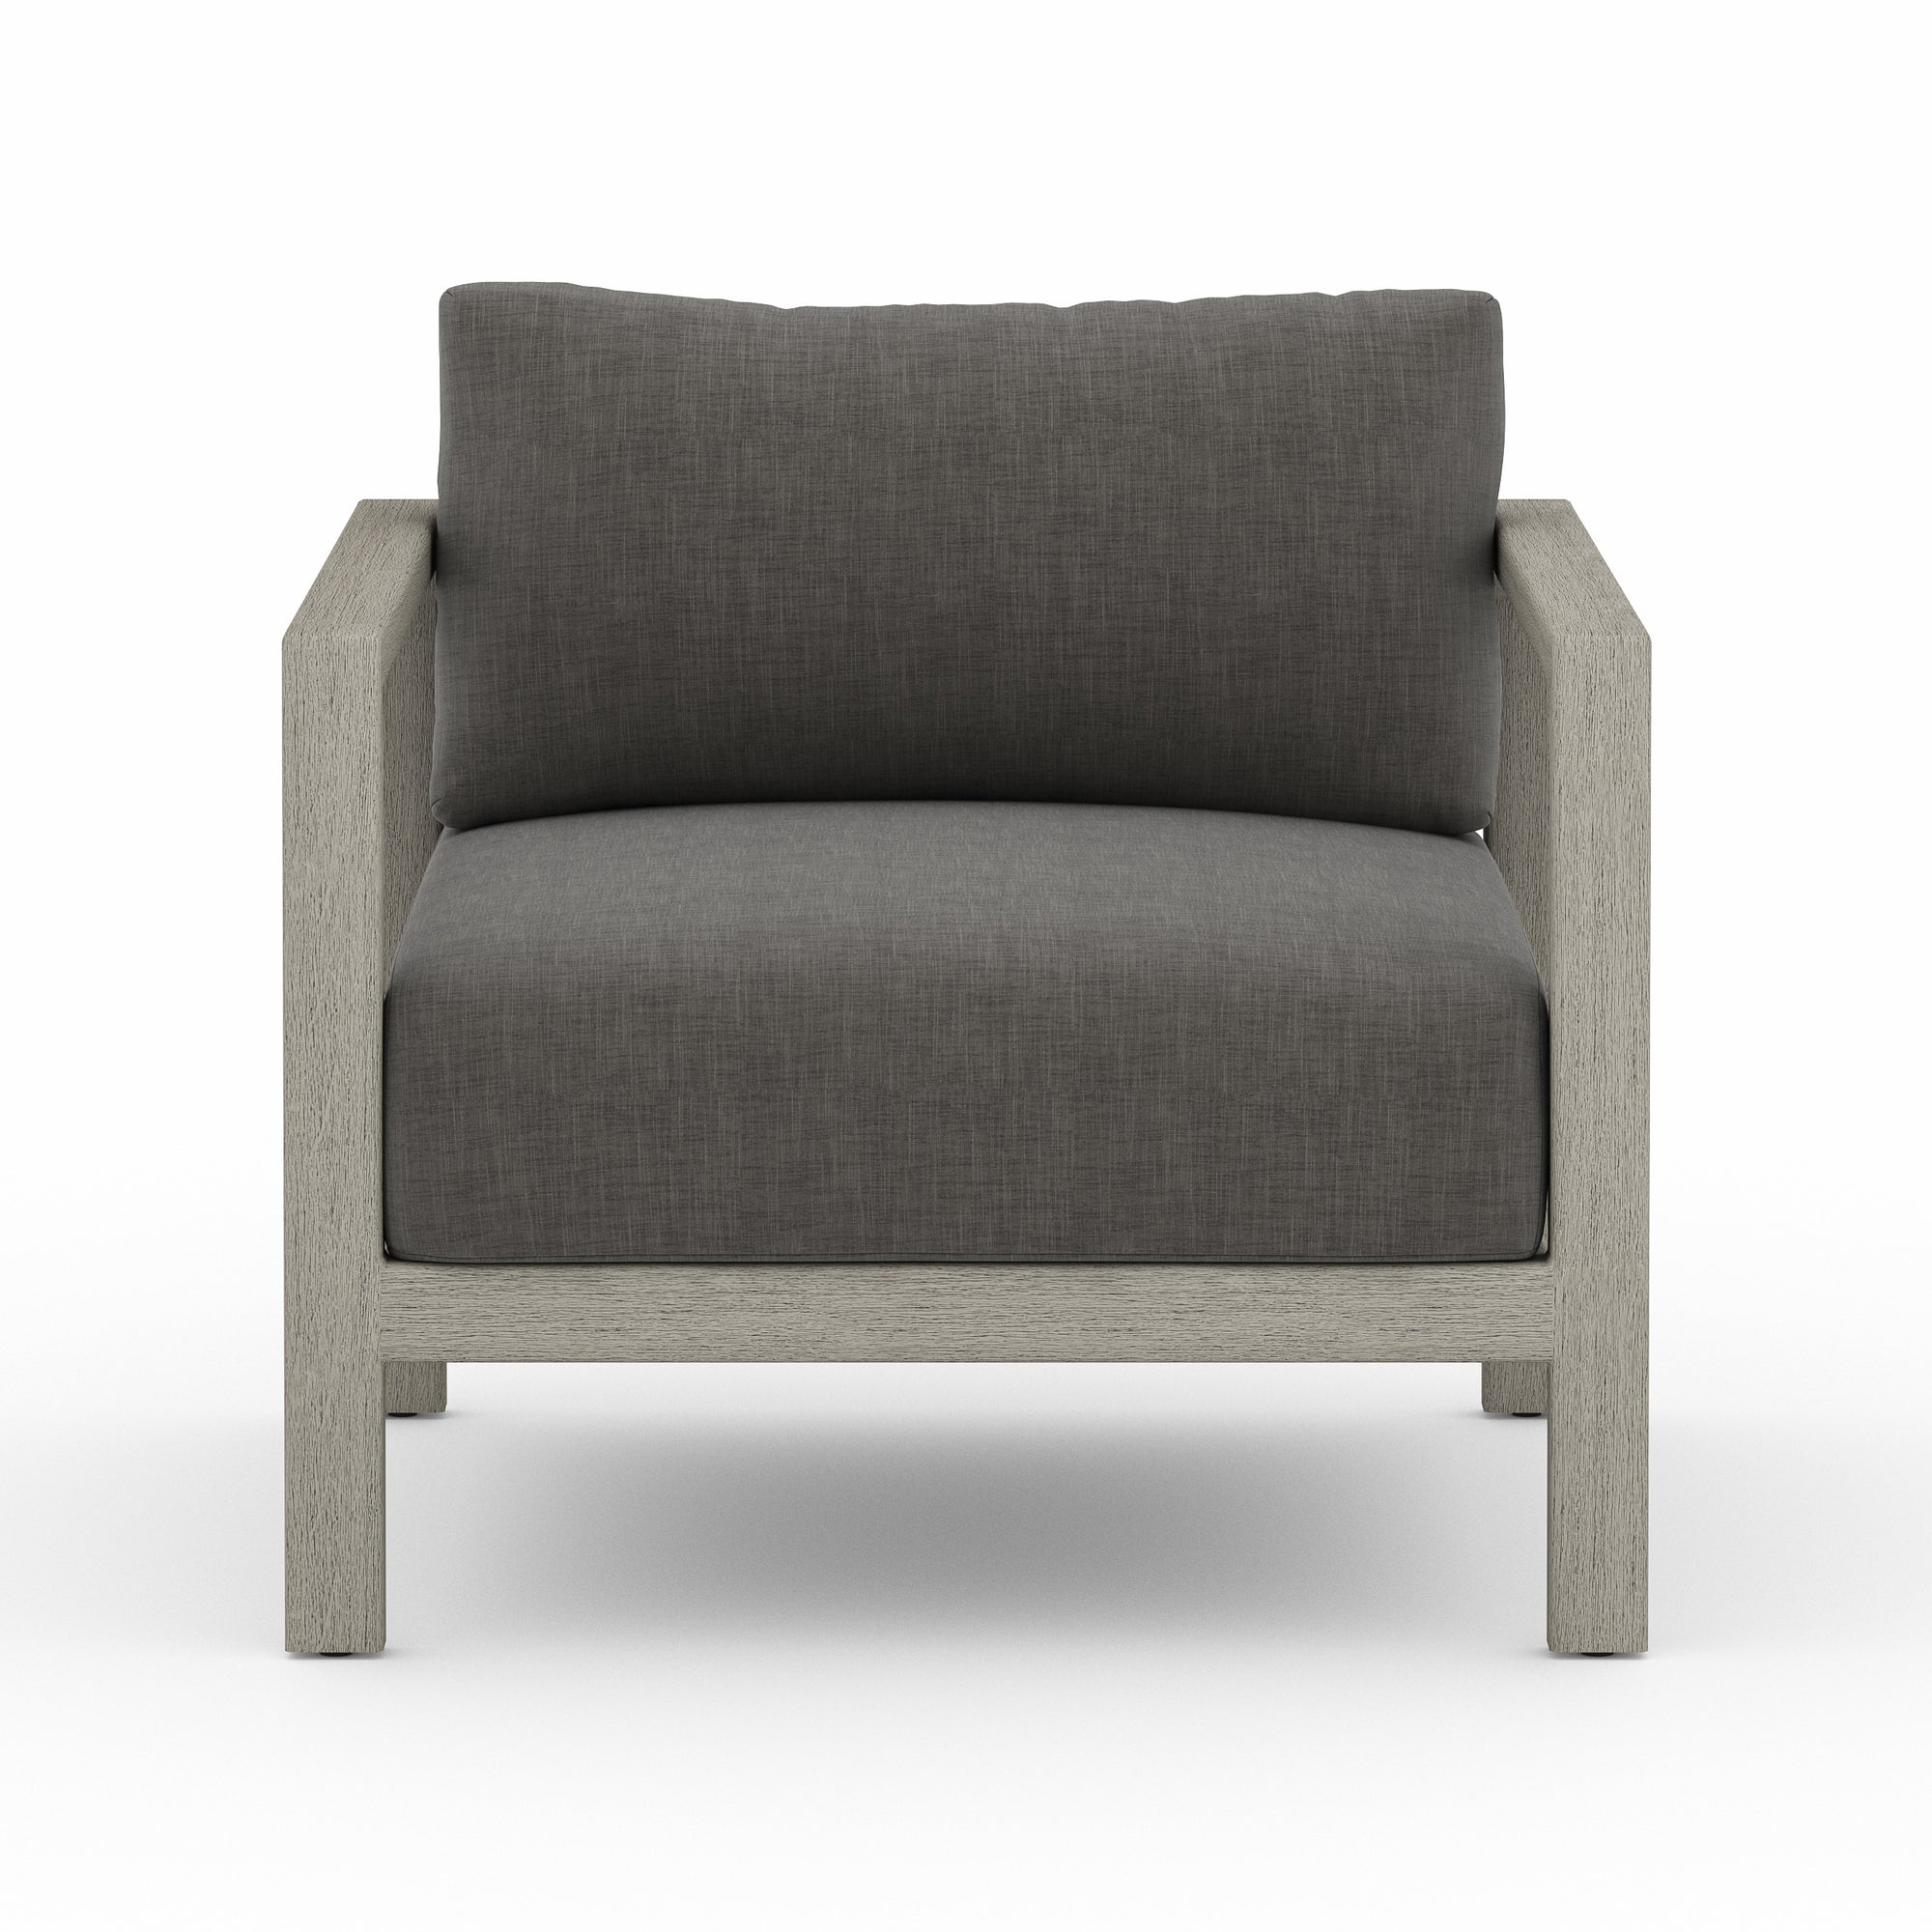 Sonoma Grey Teak Outdoor Chair